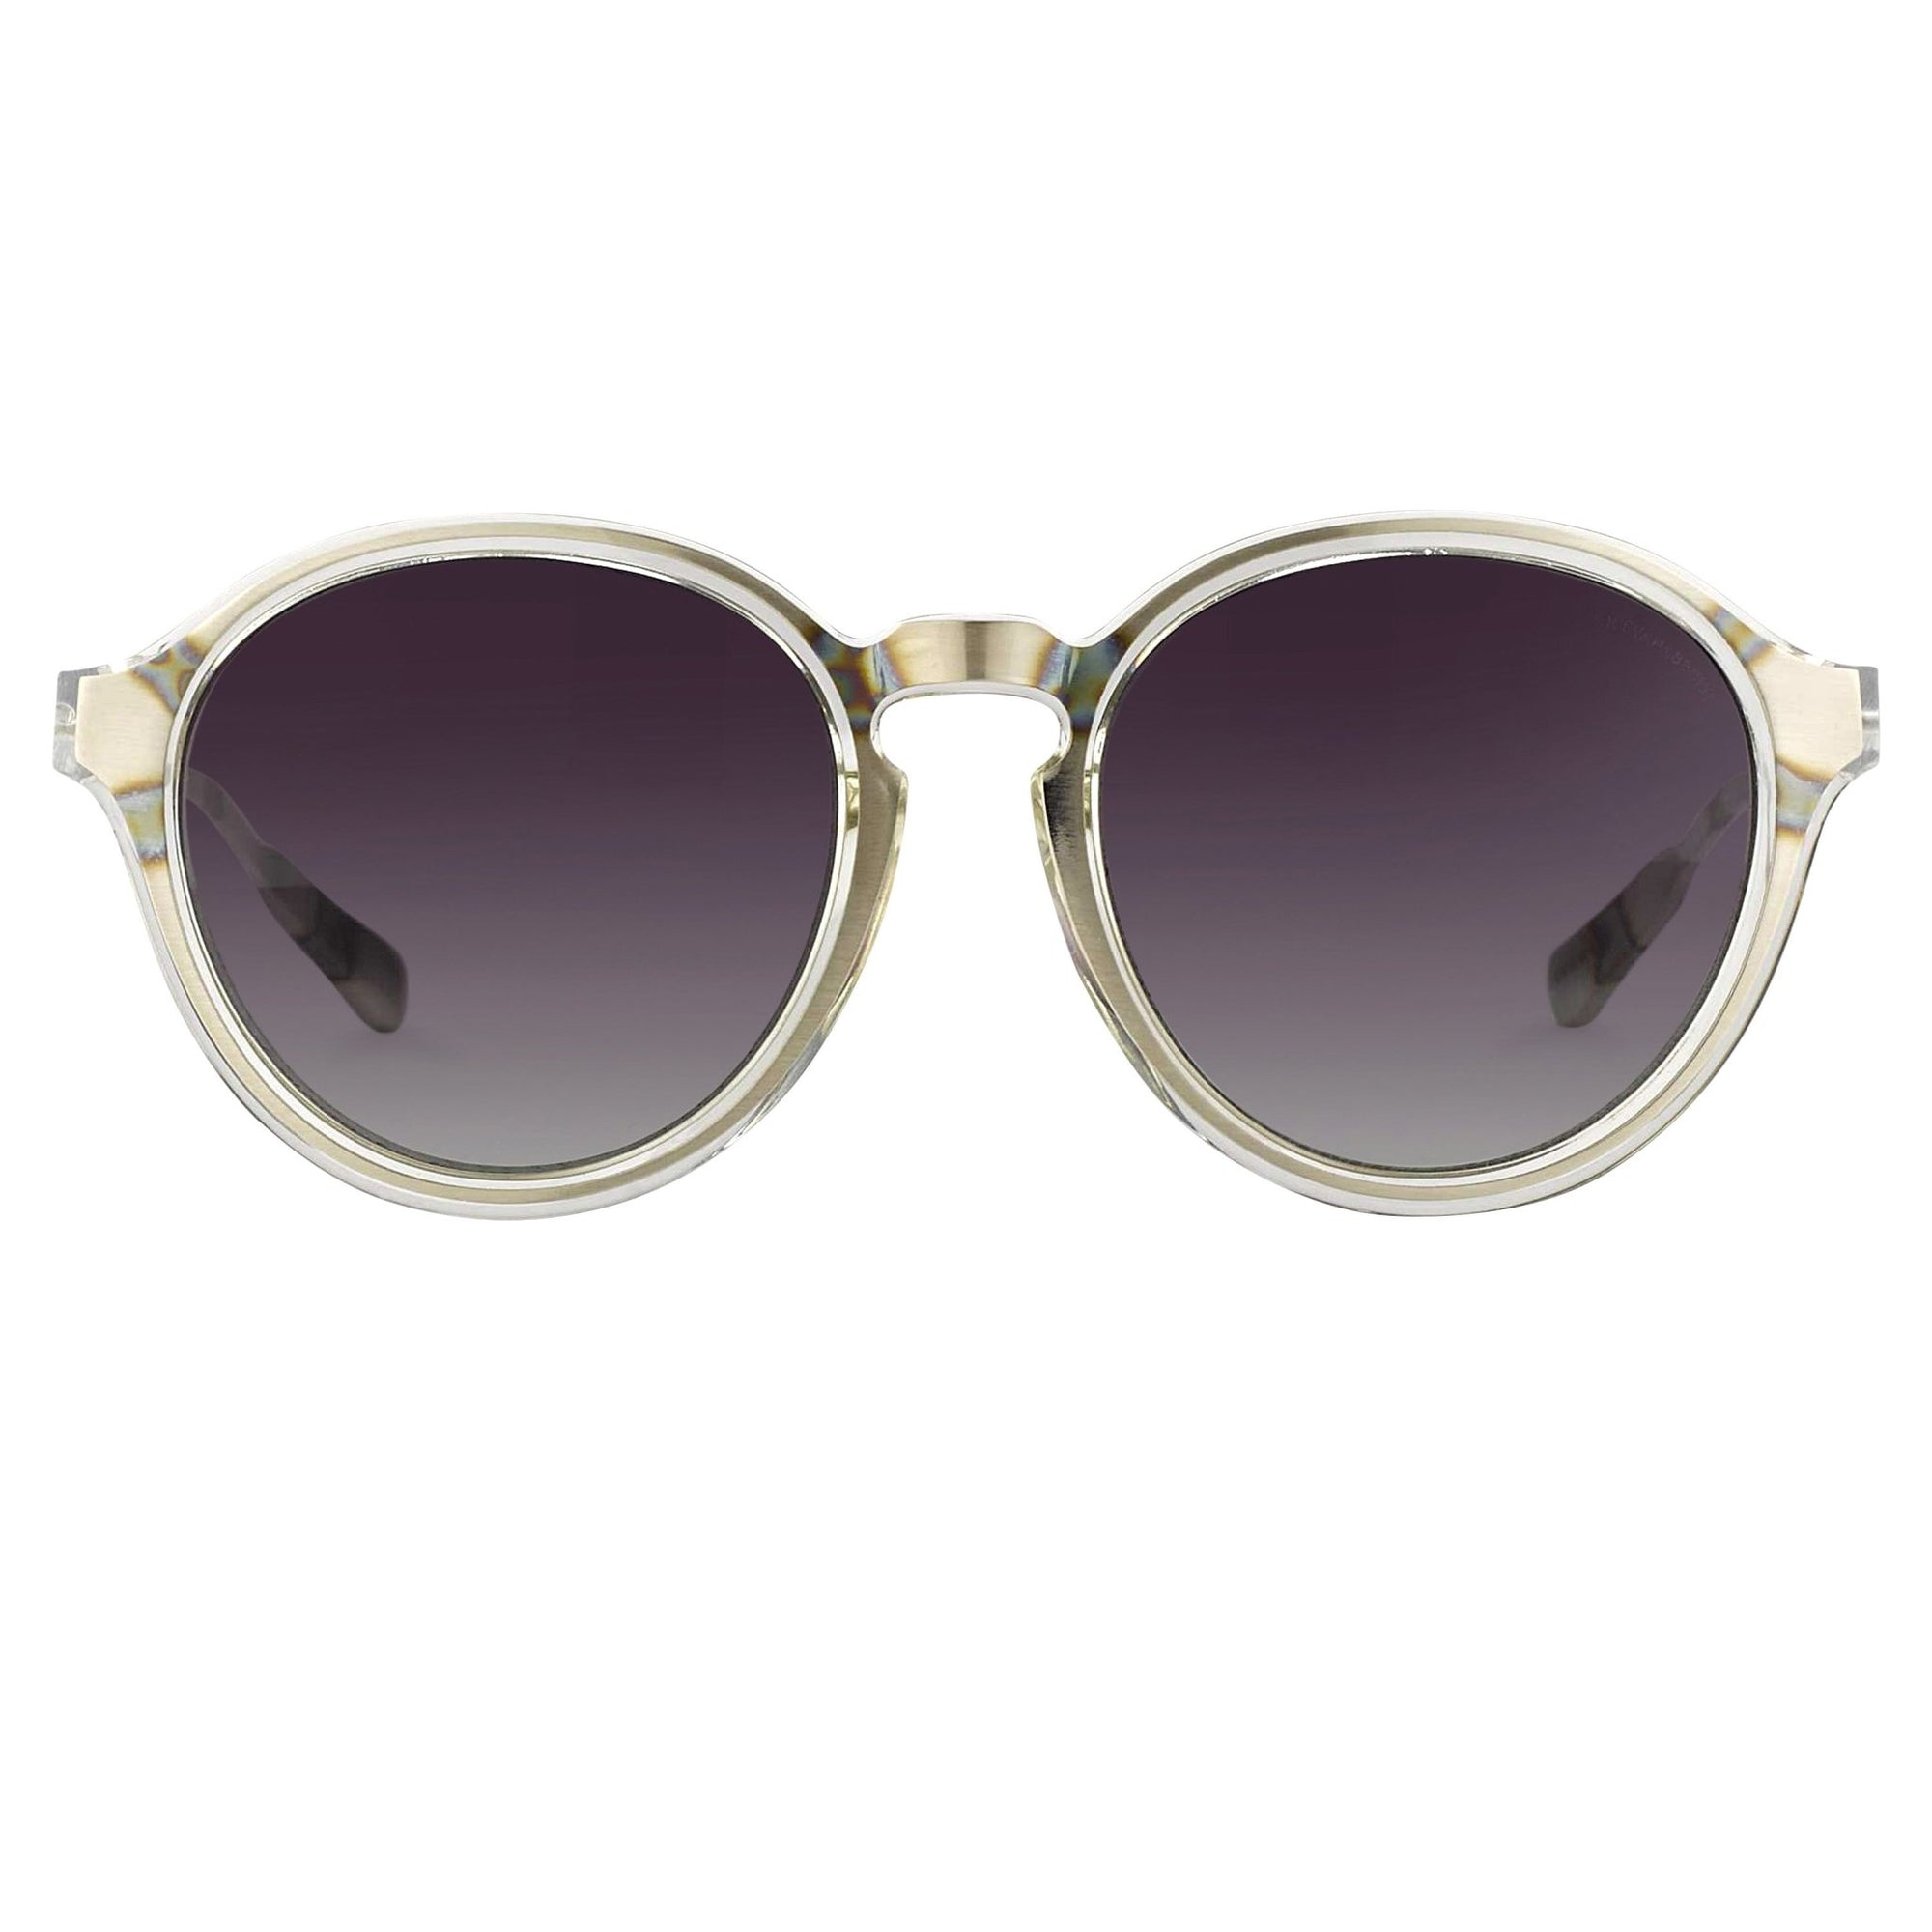 Kris Van Assche Sunglasses with Oval Clear Silver and Green Graduated Lenses - KVA79C4SUN - Watches & Crystals